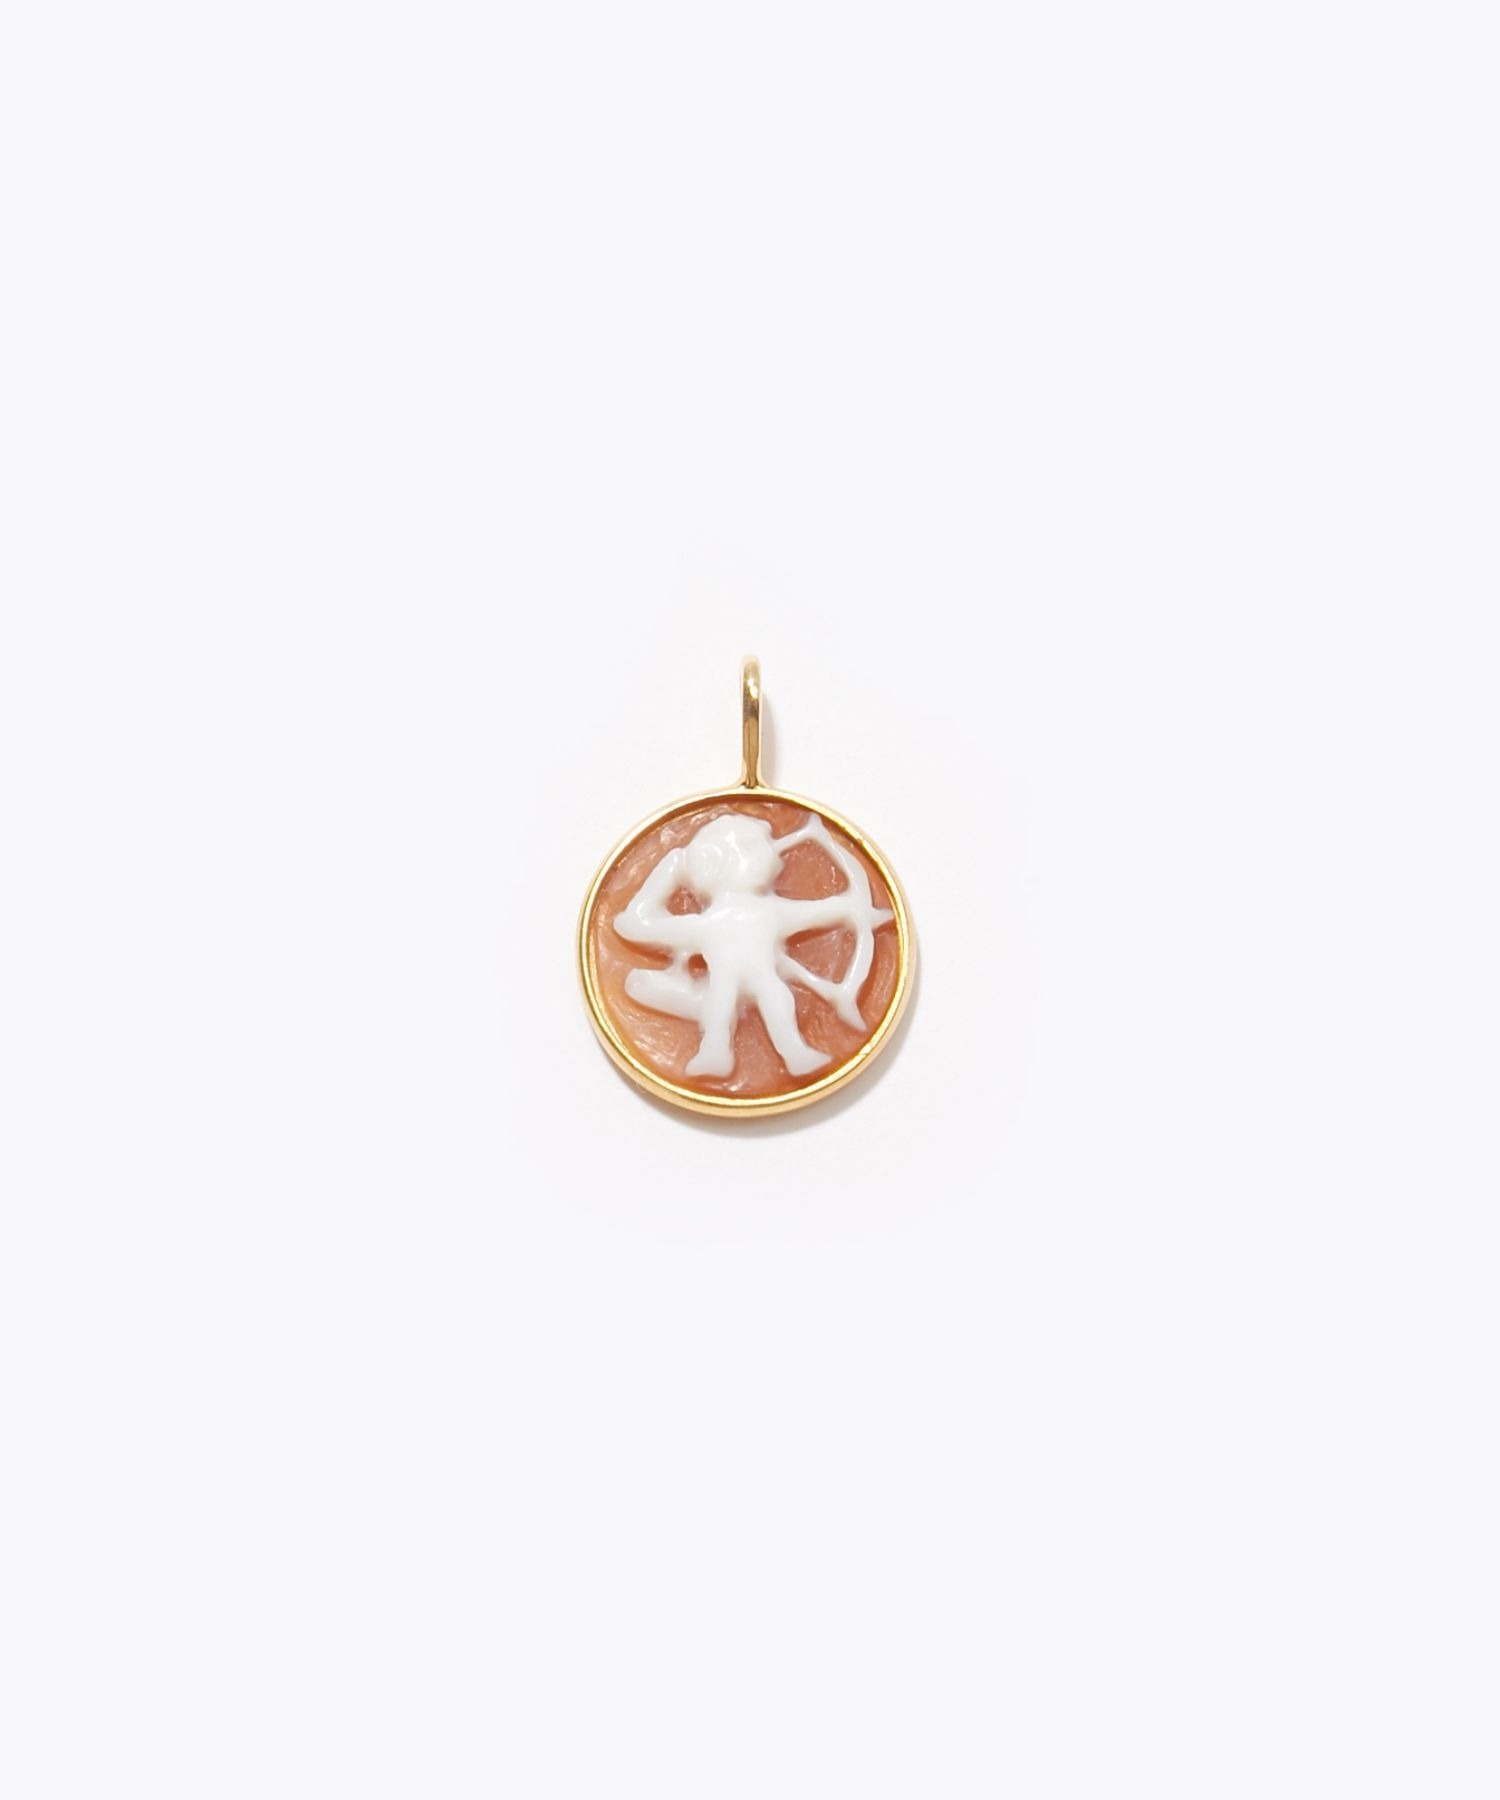 [constellation] Sagittarius cameo curving charm